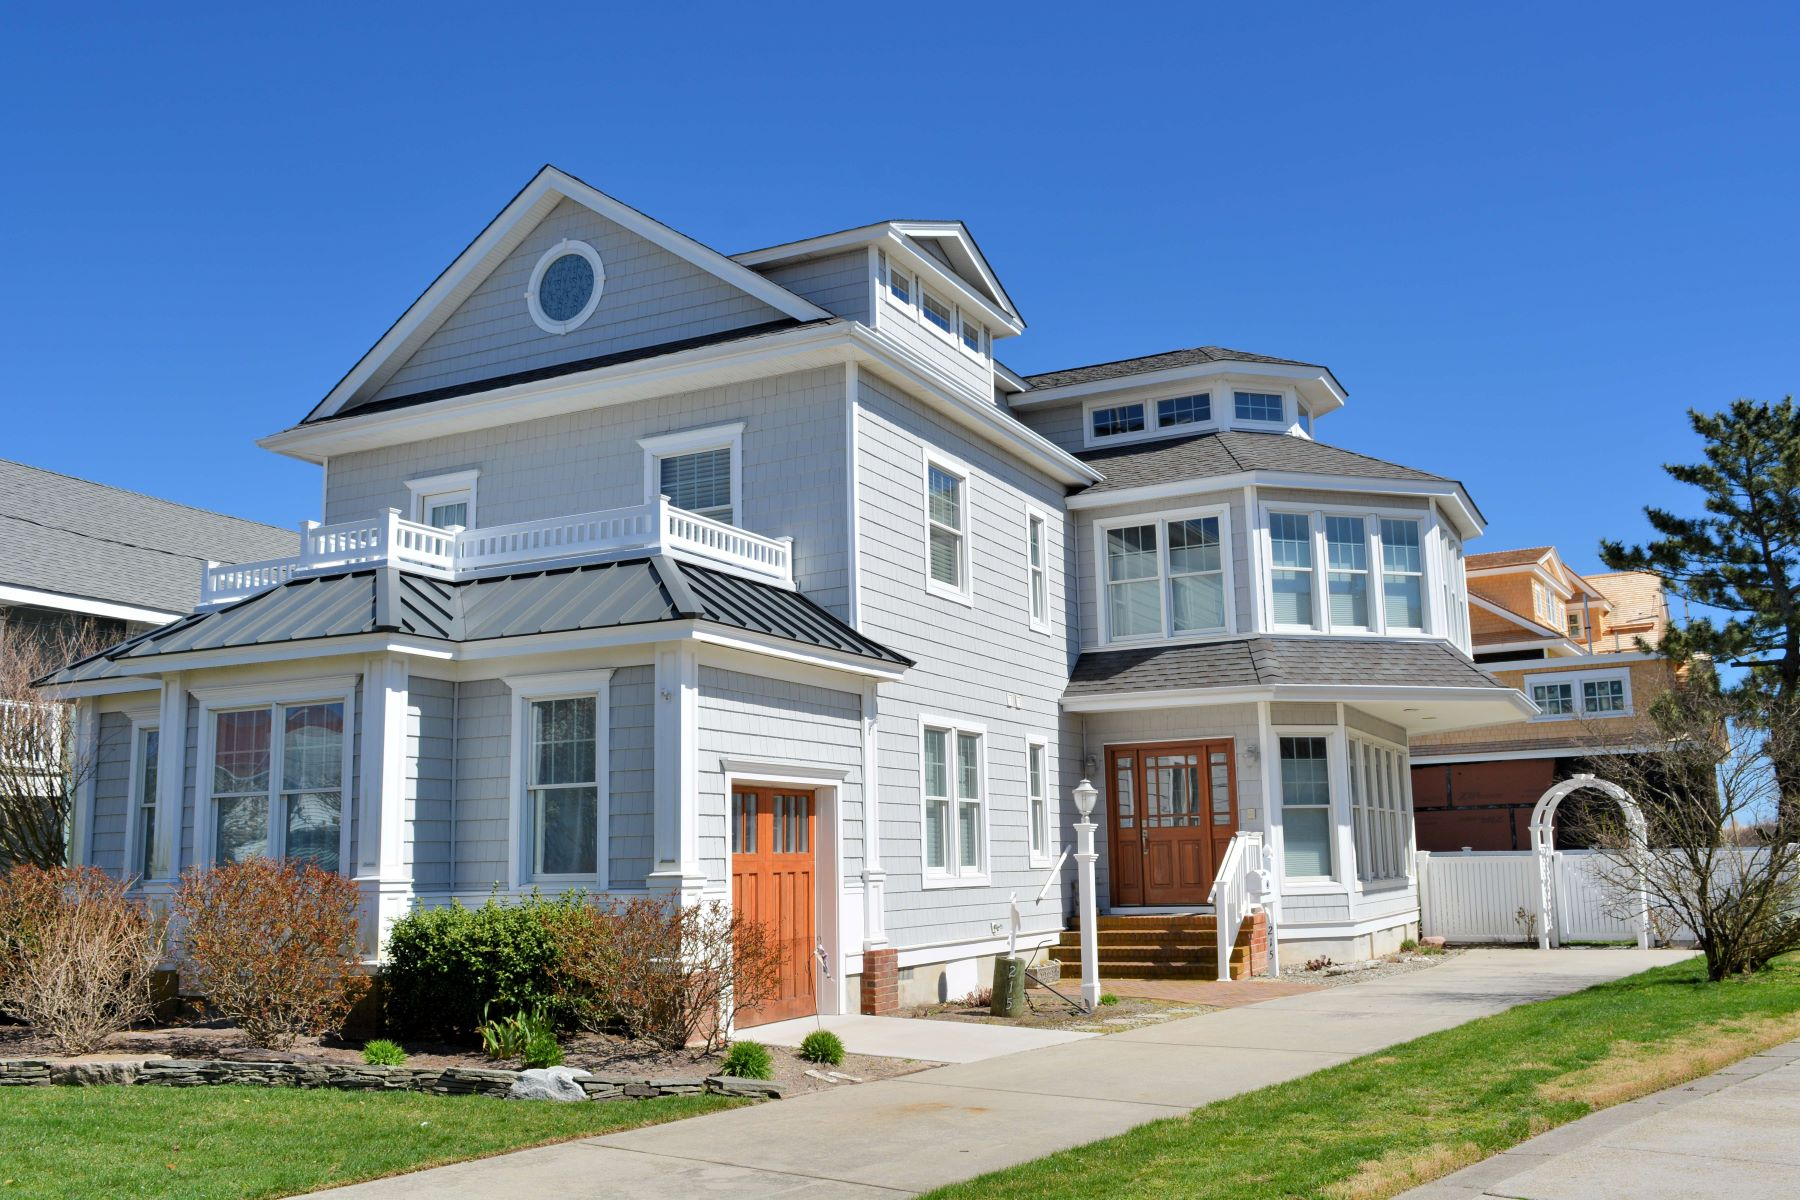 Single Family Home for Sale at Sophisticated Single Family Home 215 Ocean Road Ocean City Ocean City, New Jersey 08226 United States